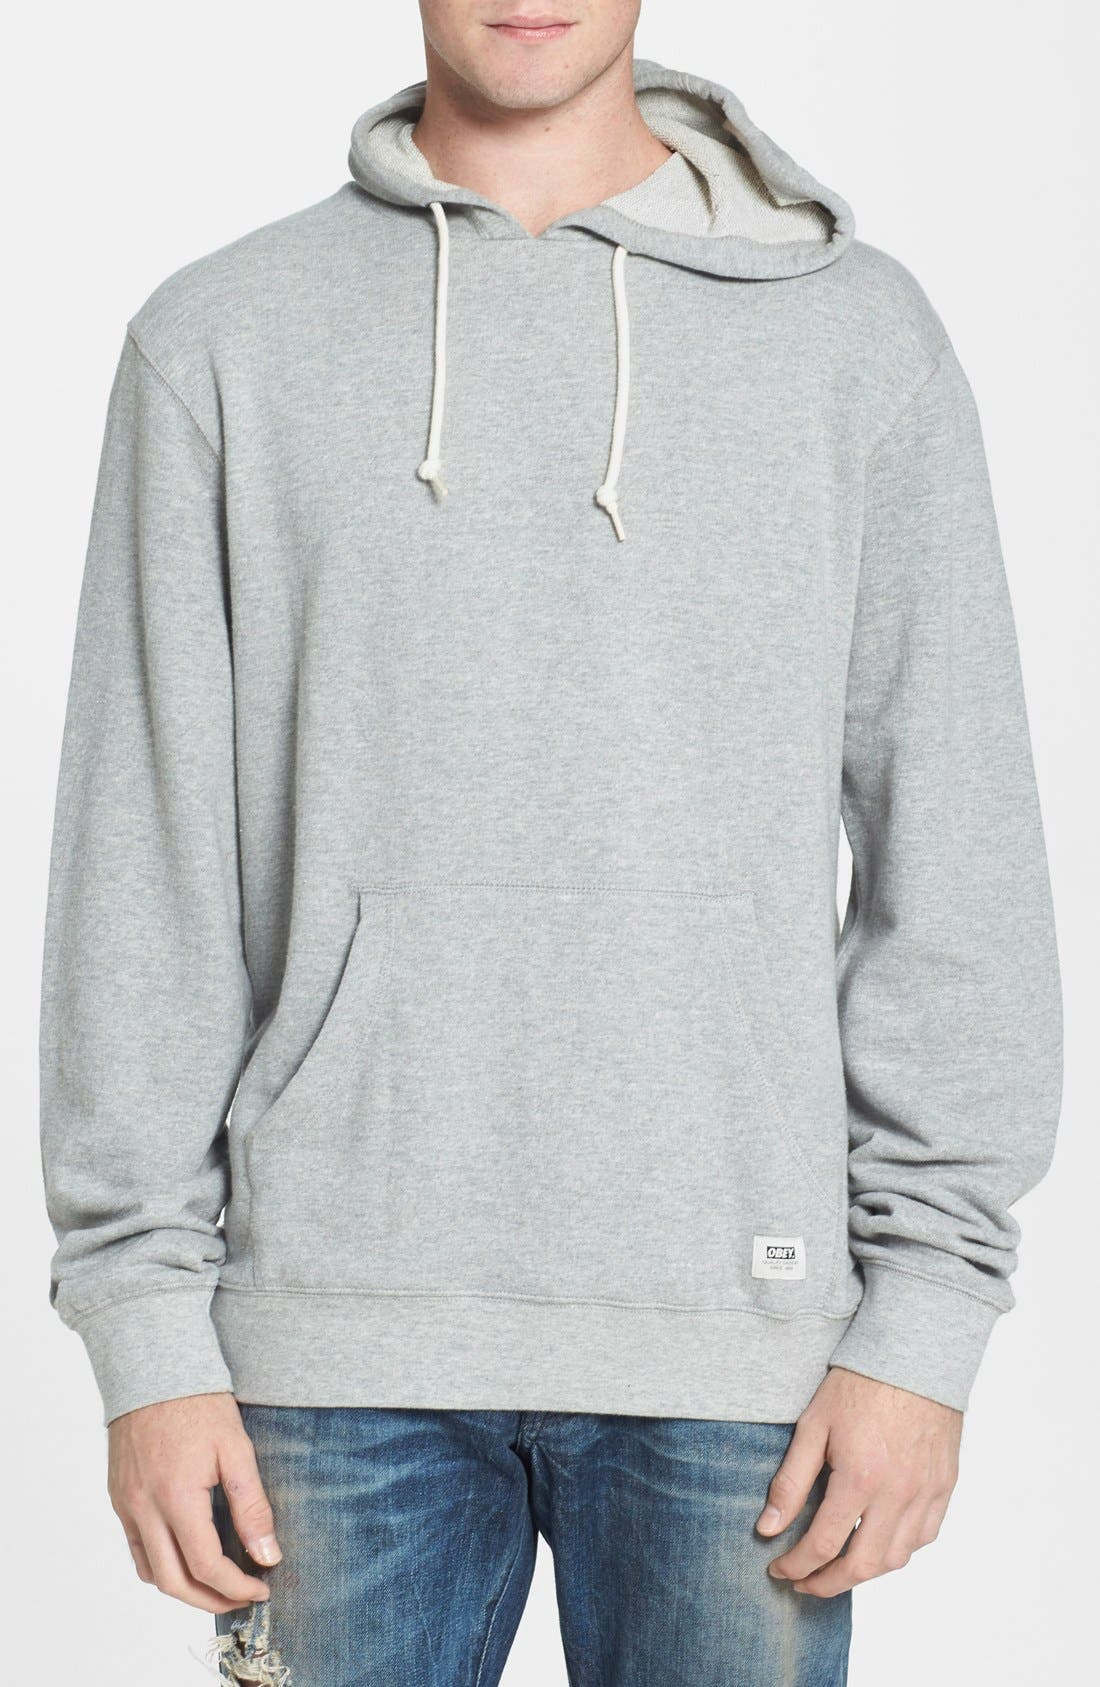 Alternate Image 1 Selected - Obey 'Dissent' Hoodie